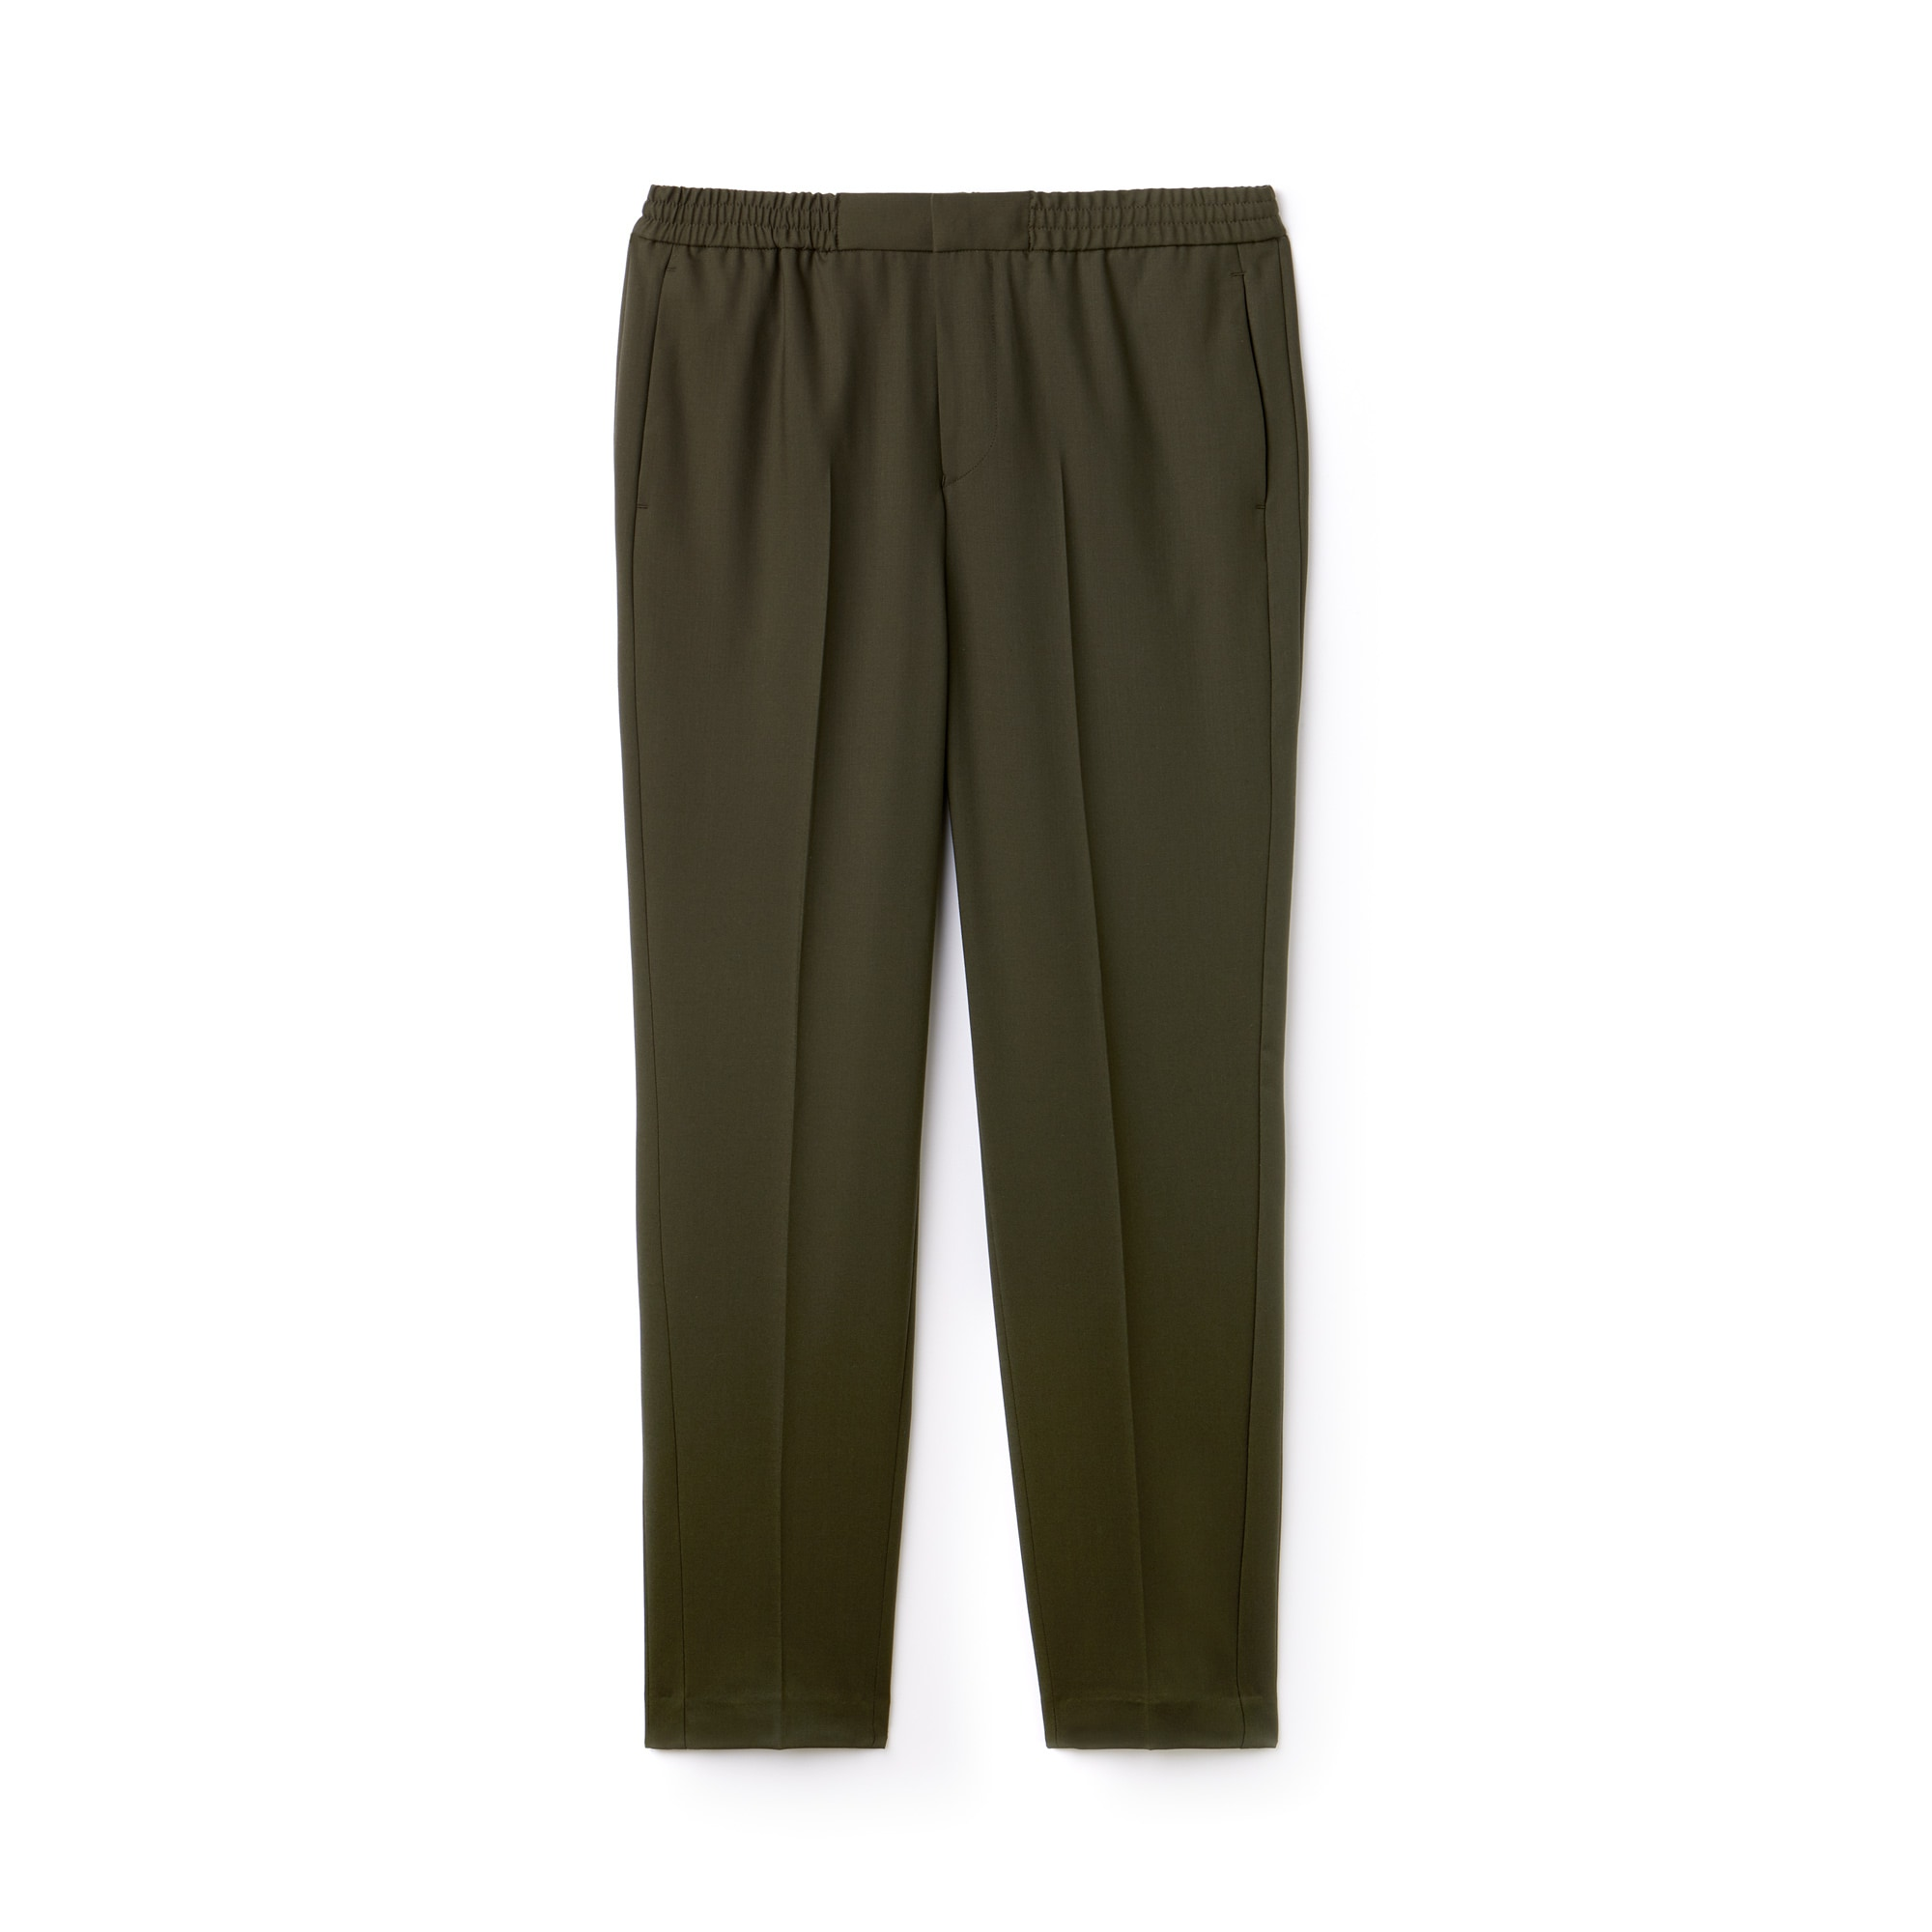 Men's Motion Pleated Stretch Wool Twill Chino Pants